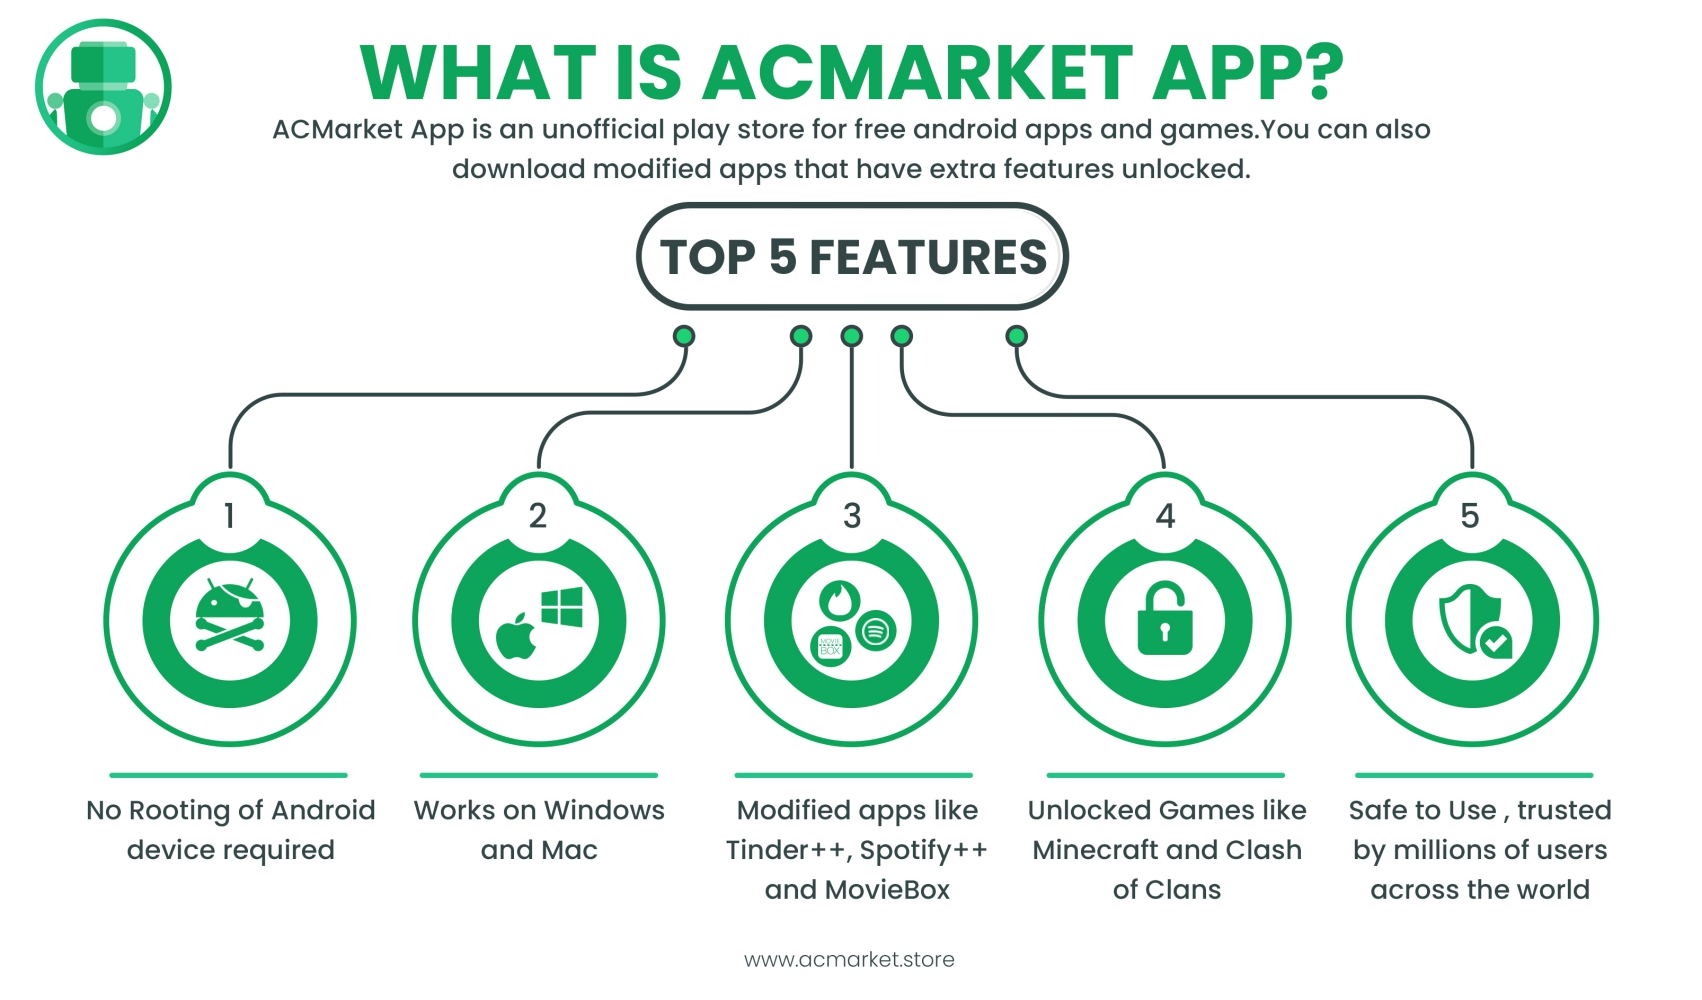 acmarket features